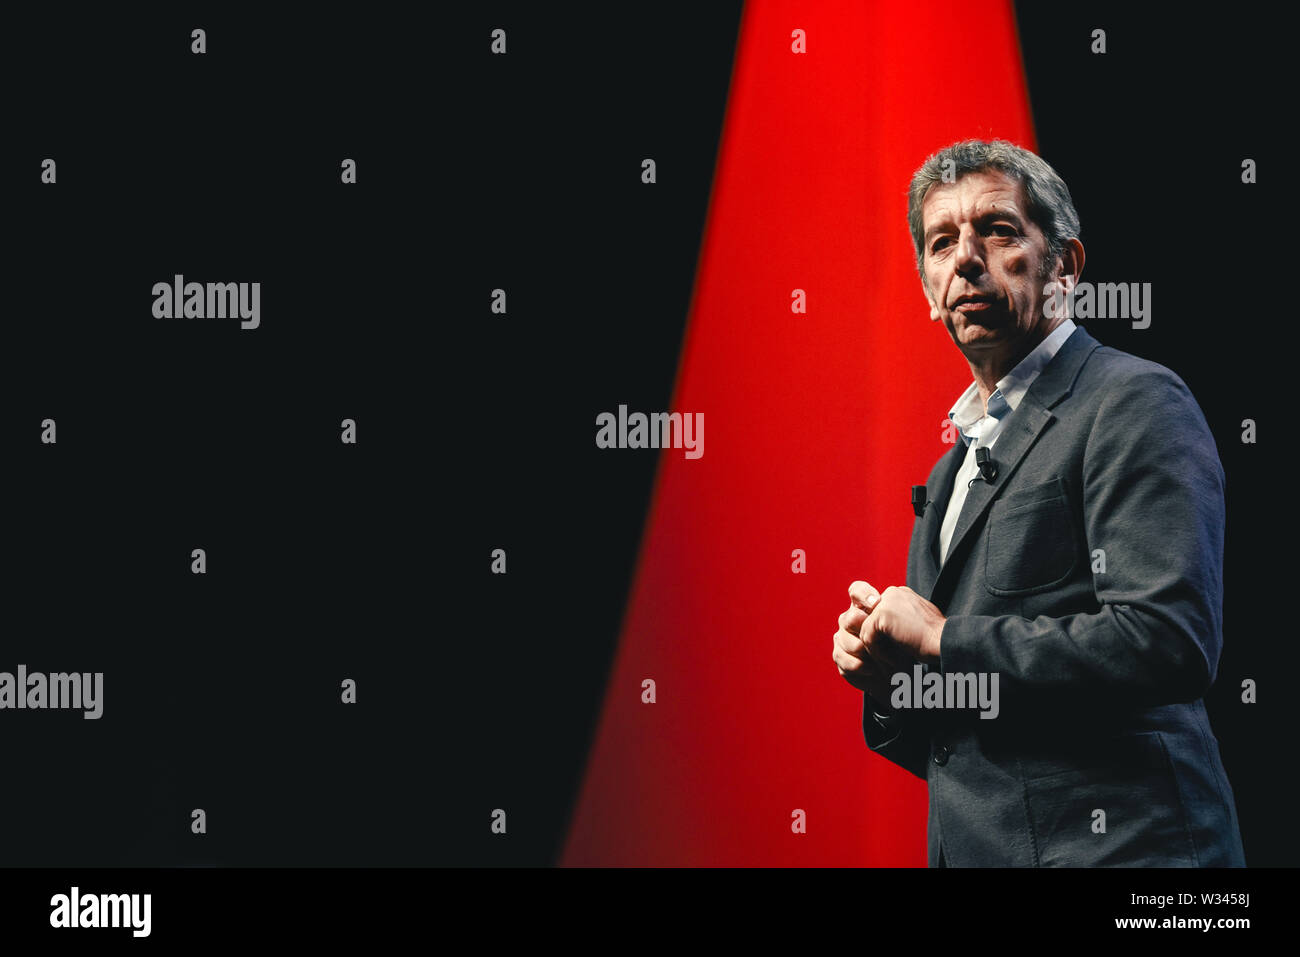 Dijon Eastern France 2018 11 22 Doctor Michel Cymes French Surgeon Specialized In Otorhinolaryngology Ent On Stage For His Lecture During The Stock Photo Alamy